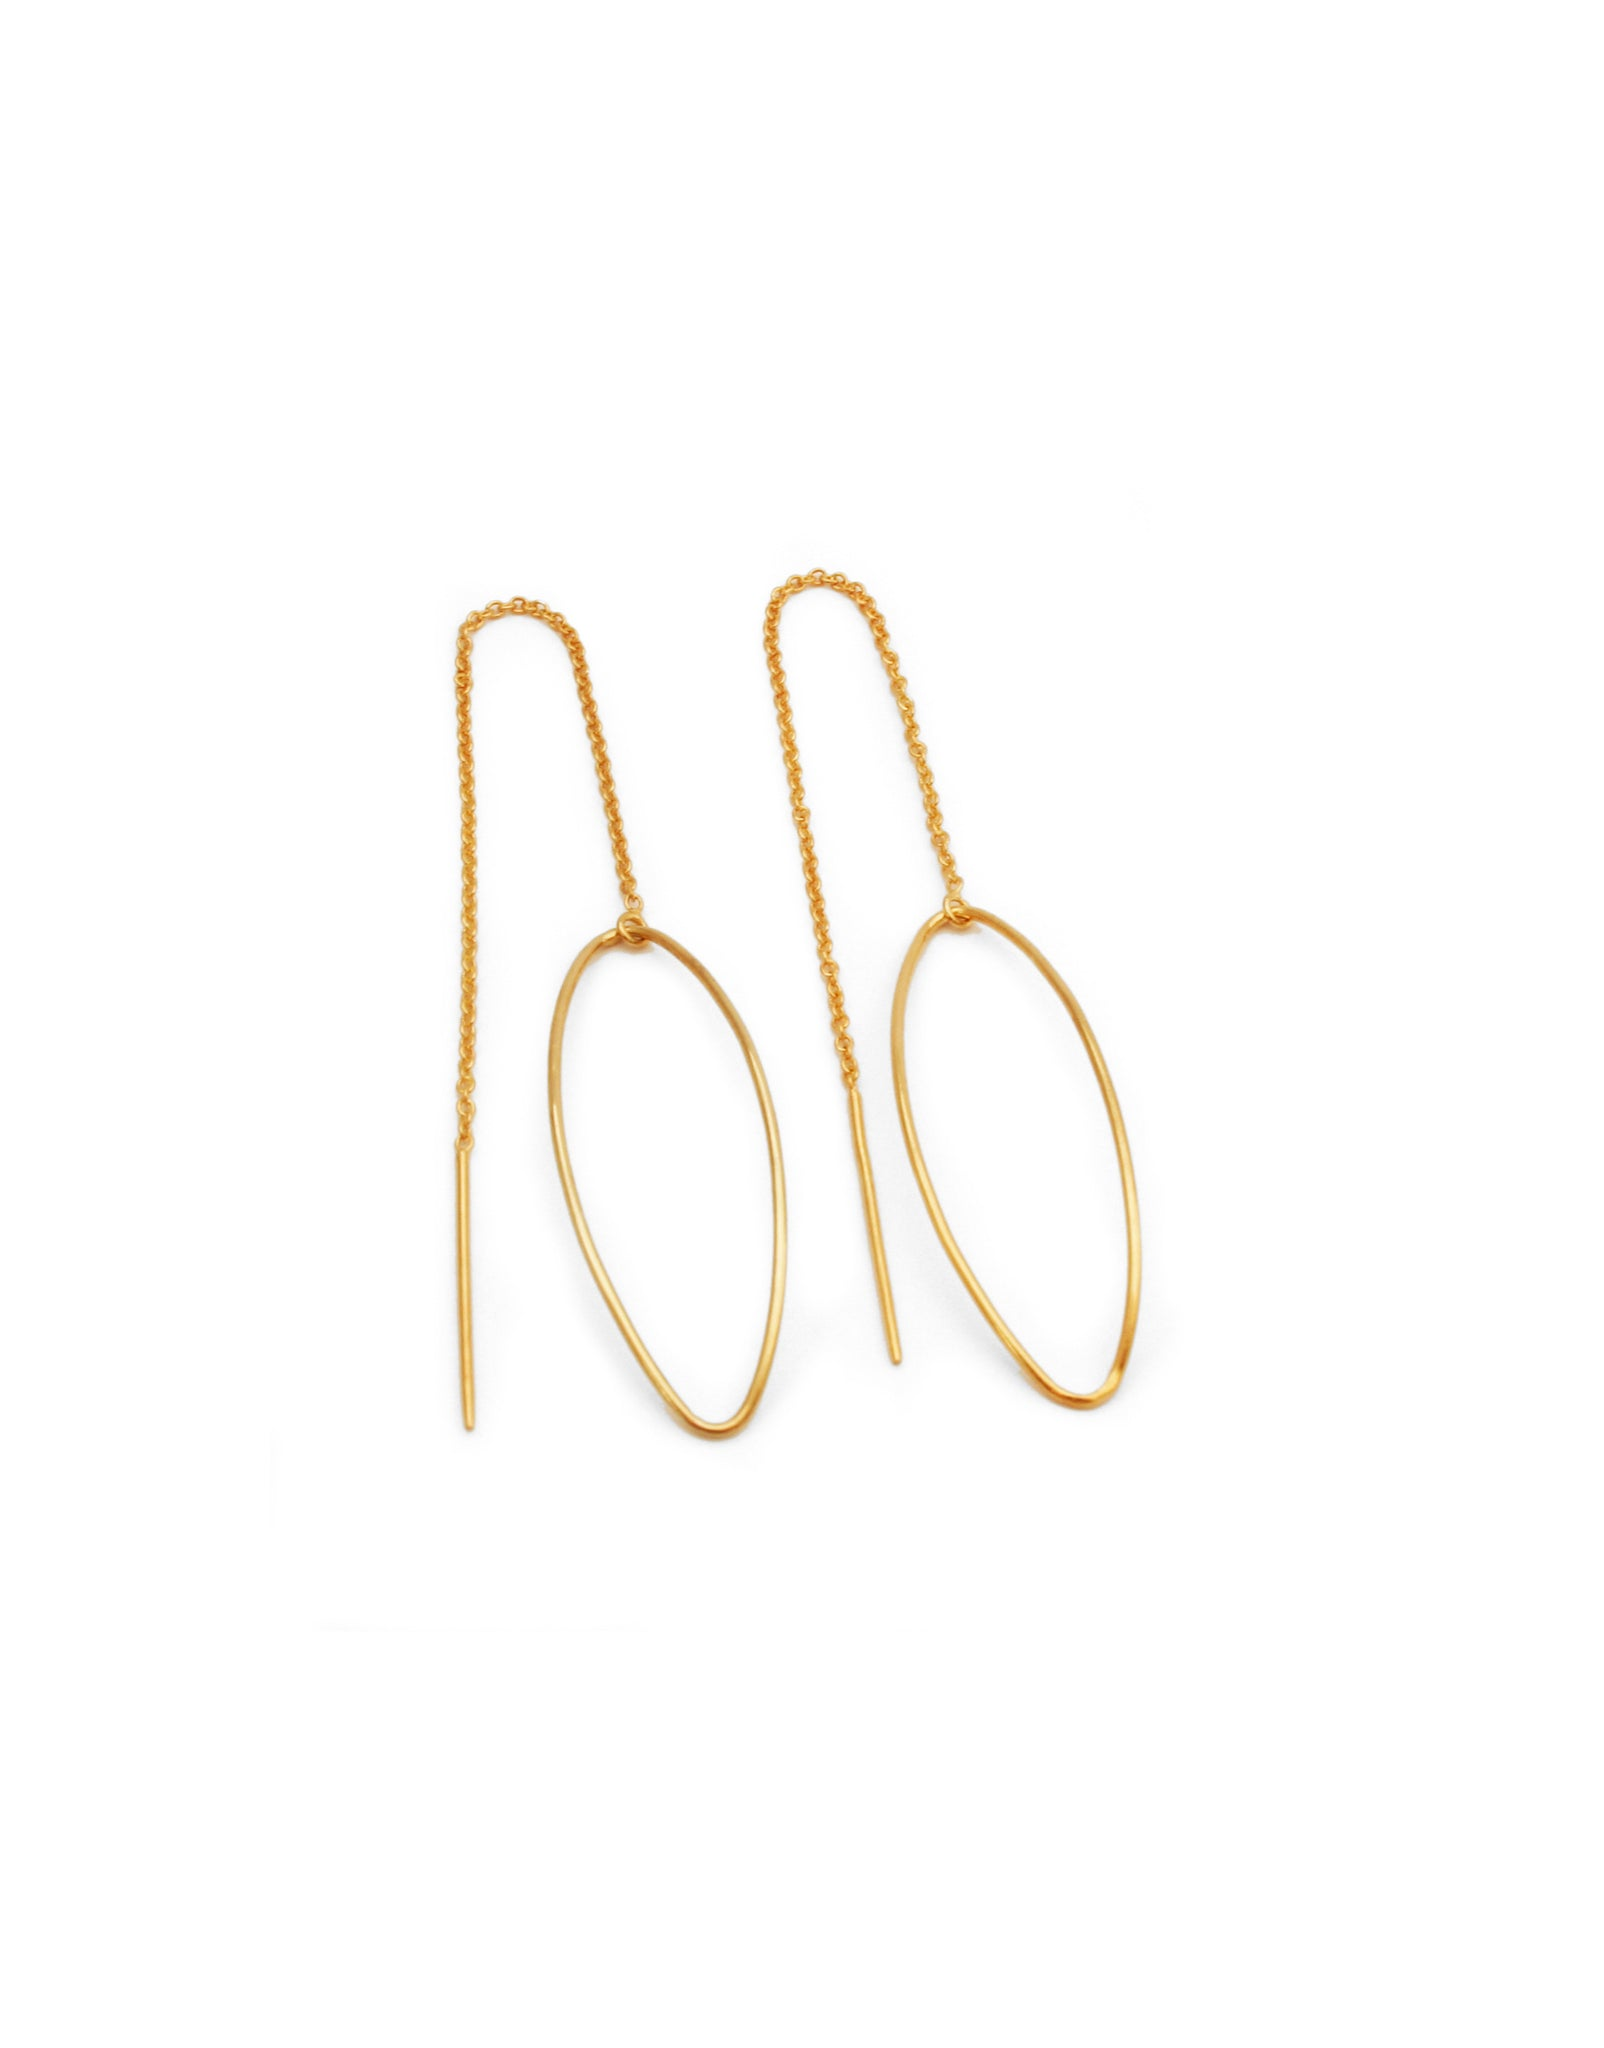 AMANDE CHAIN EARRINGS GOLD-PLATED